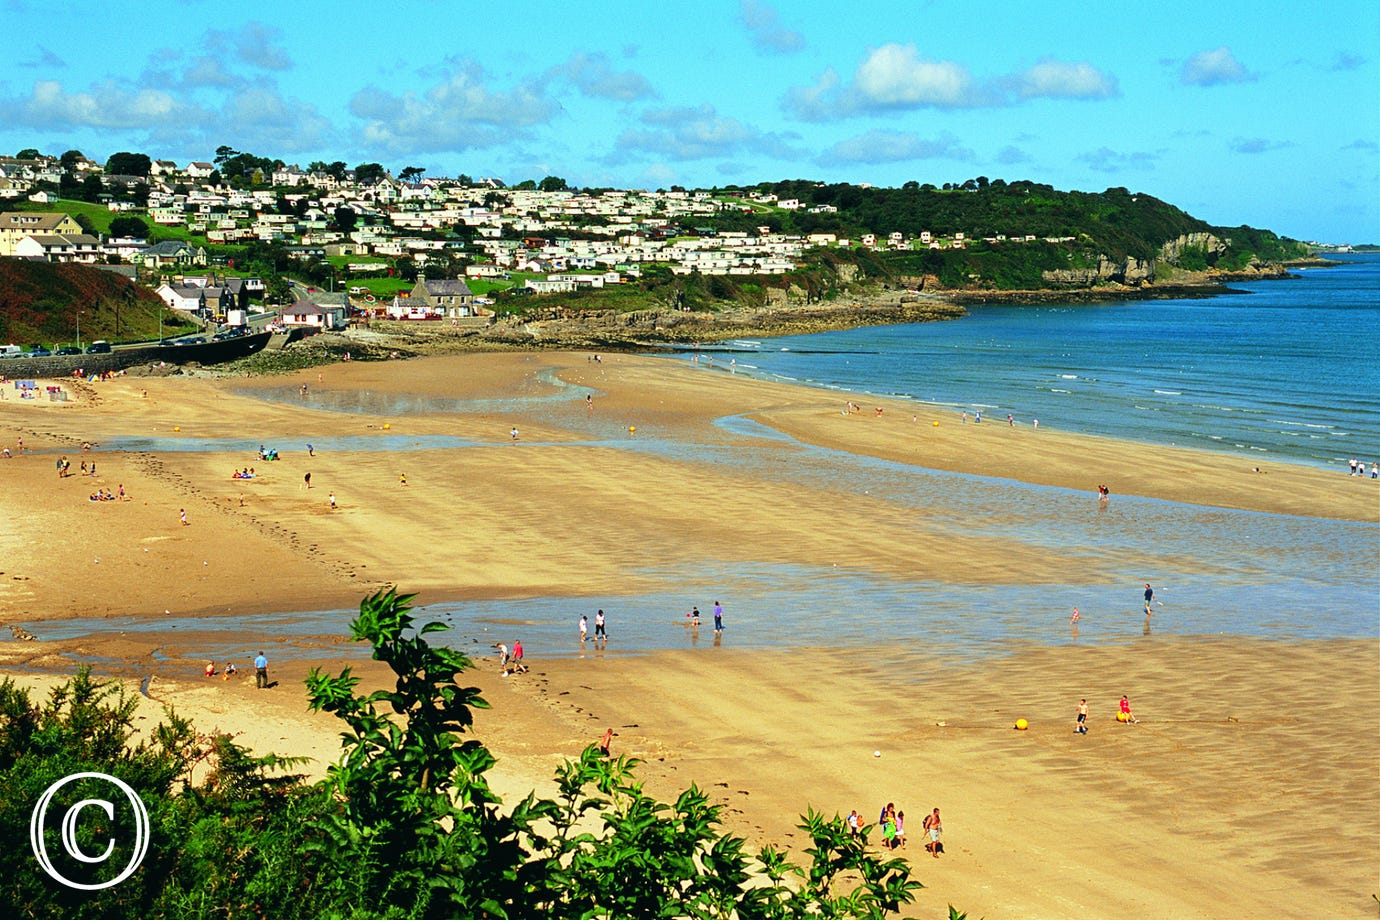 Benllech Beach, just 6.5 miles away